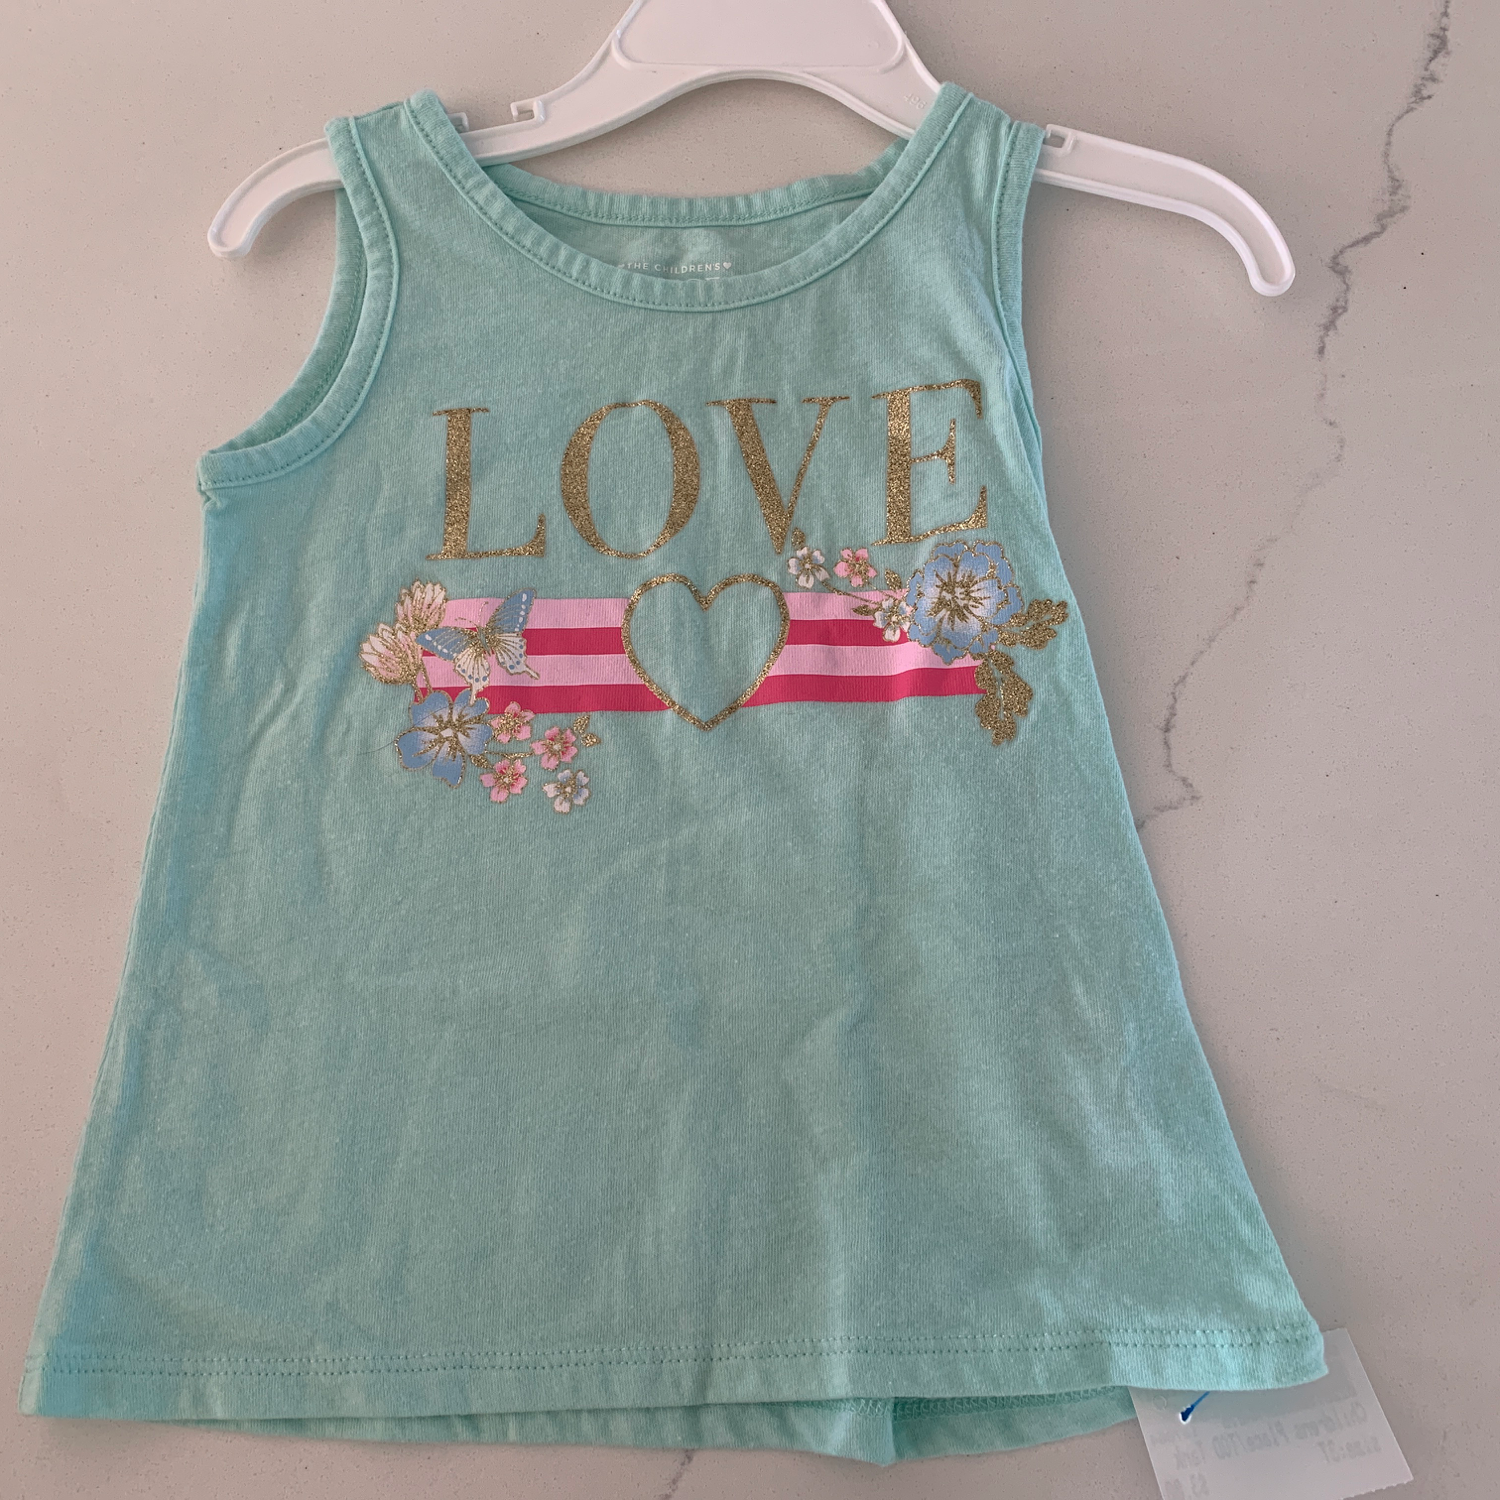 Childrens Place Toddler Top Size 3T